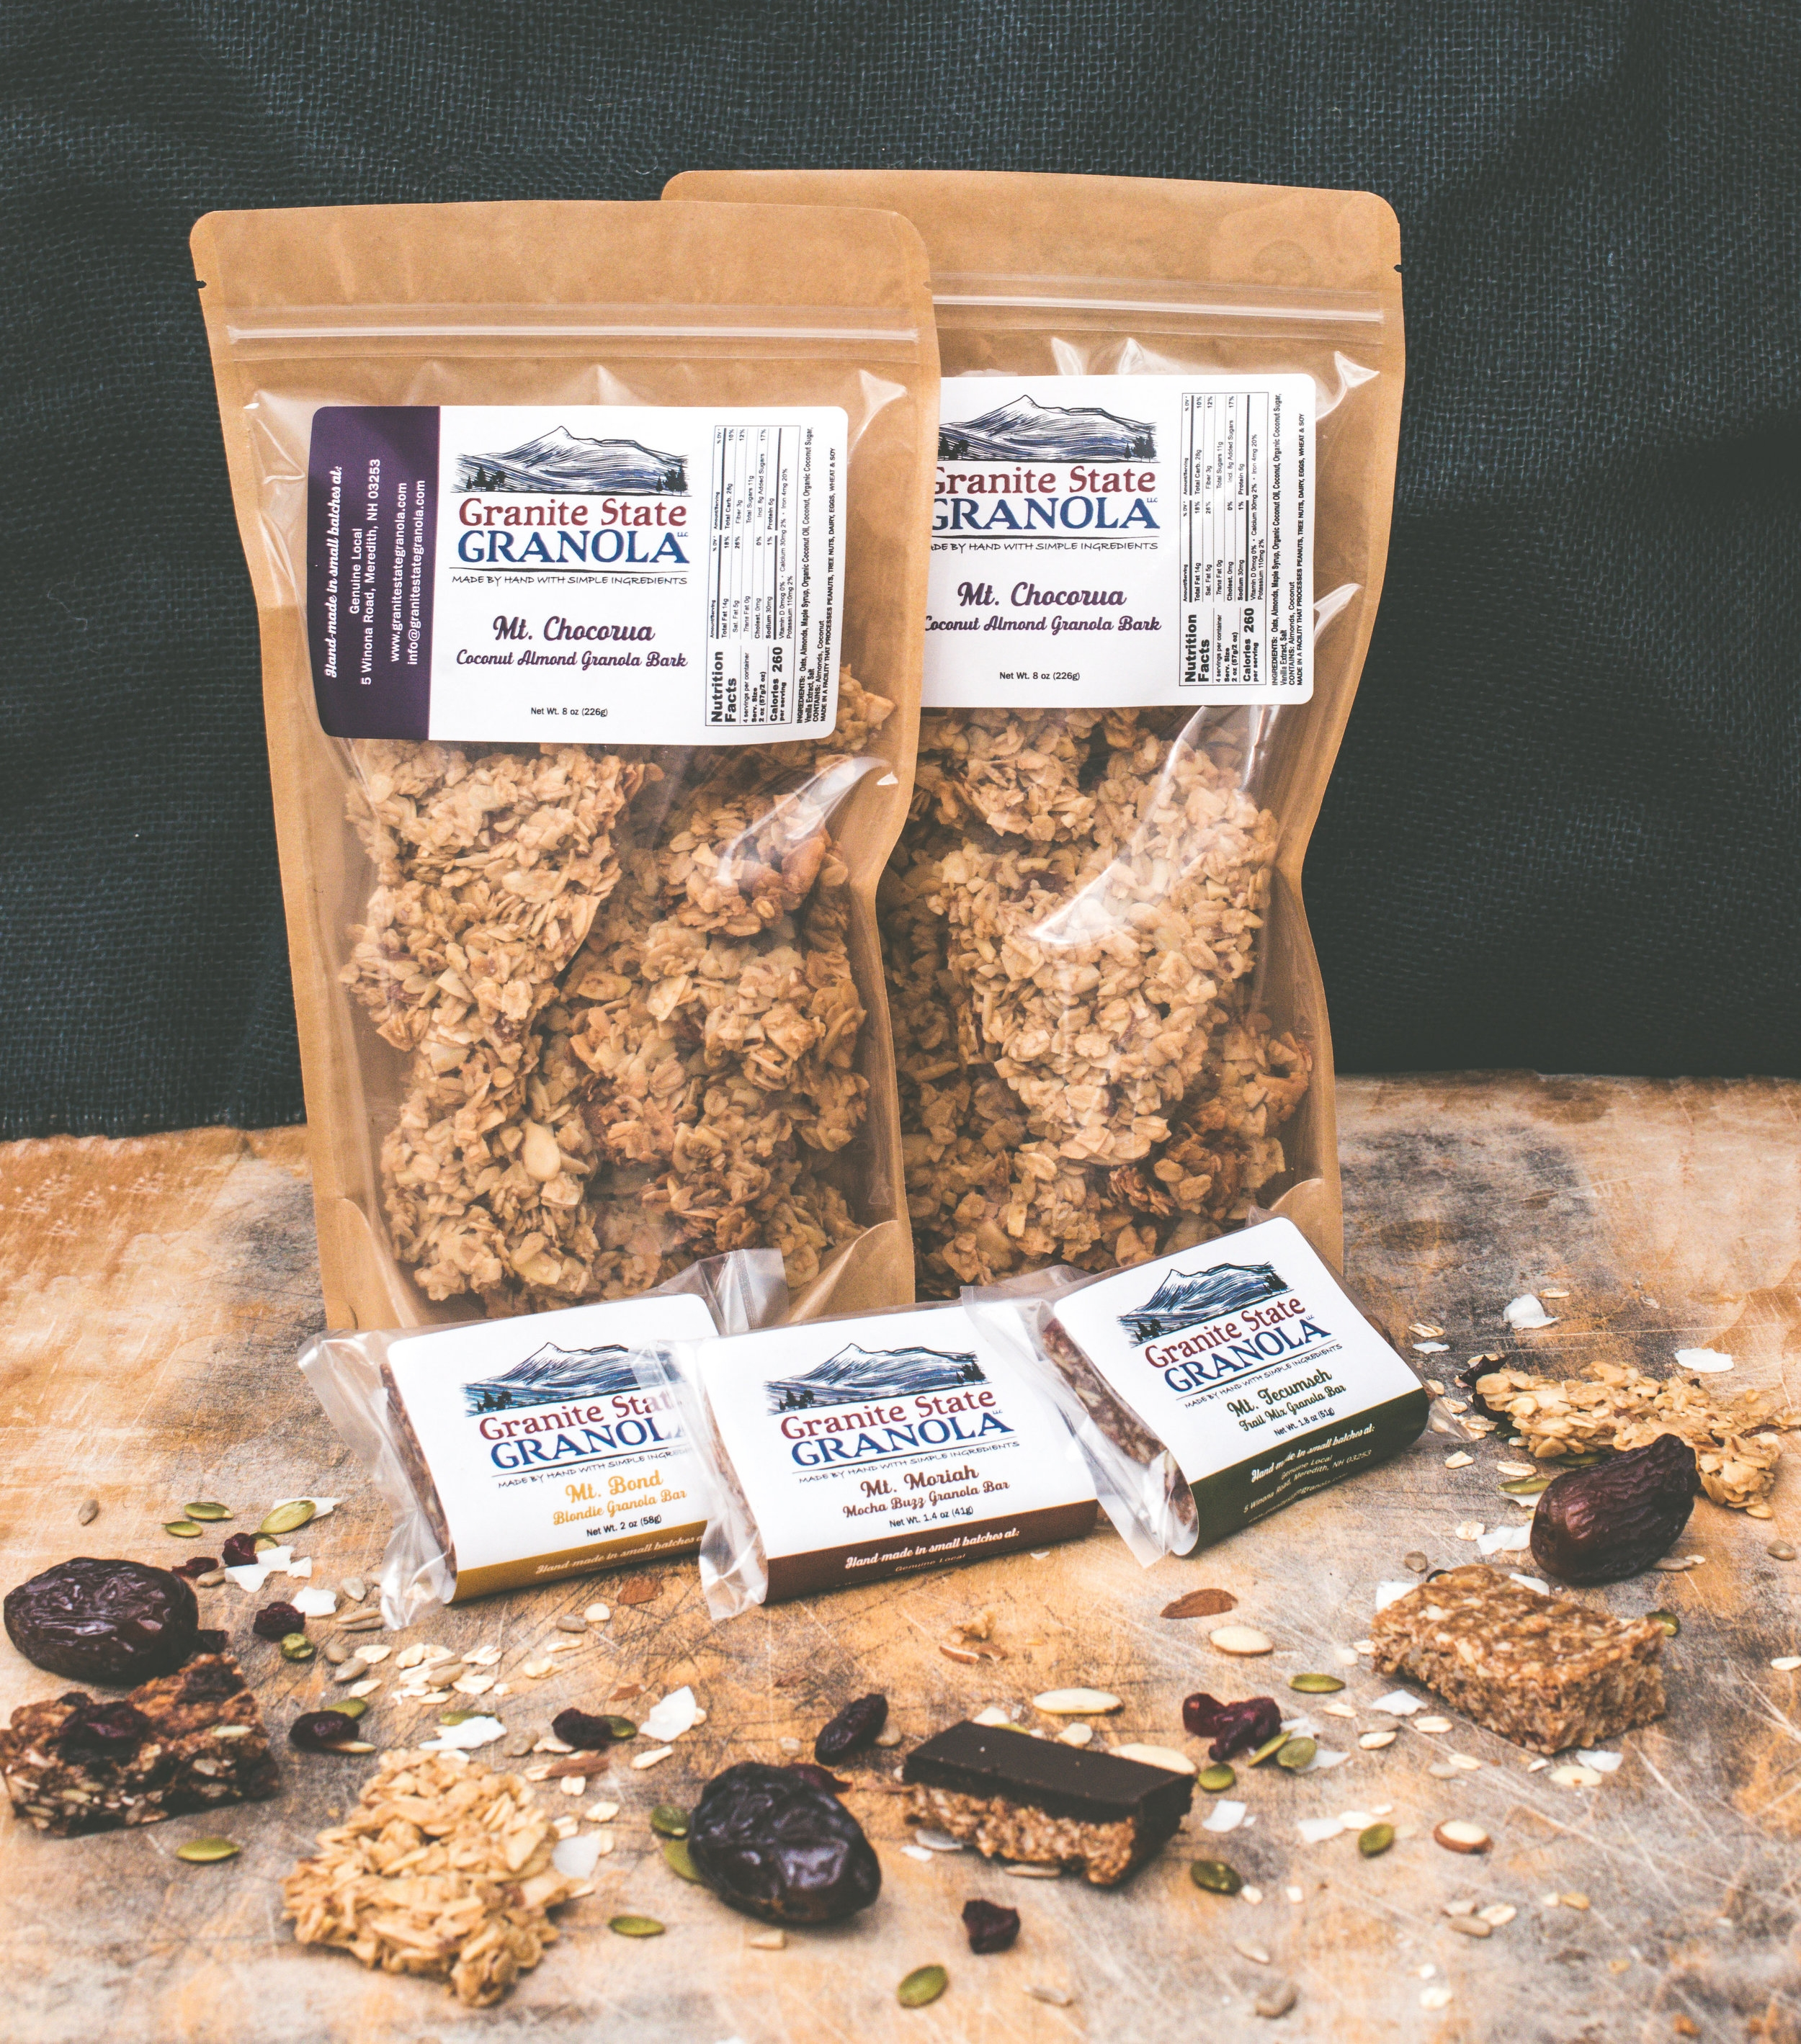 Granite State Granola Product Line.  Photo Credit: Jessica Ramos, Culture to Table  *Granite State Granola products are made in a facility that also handles eggs, wheat, milk, and soy.